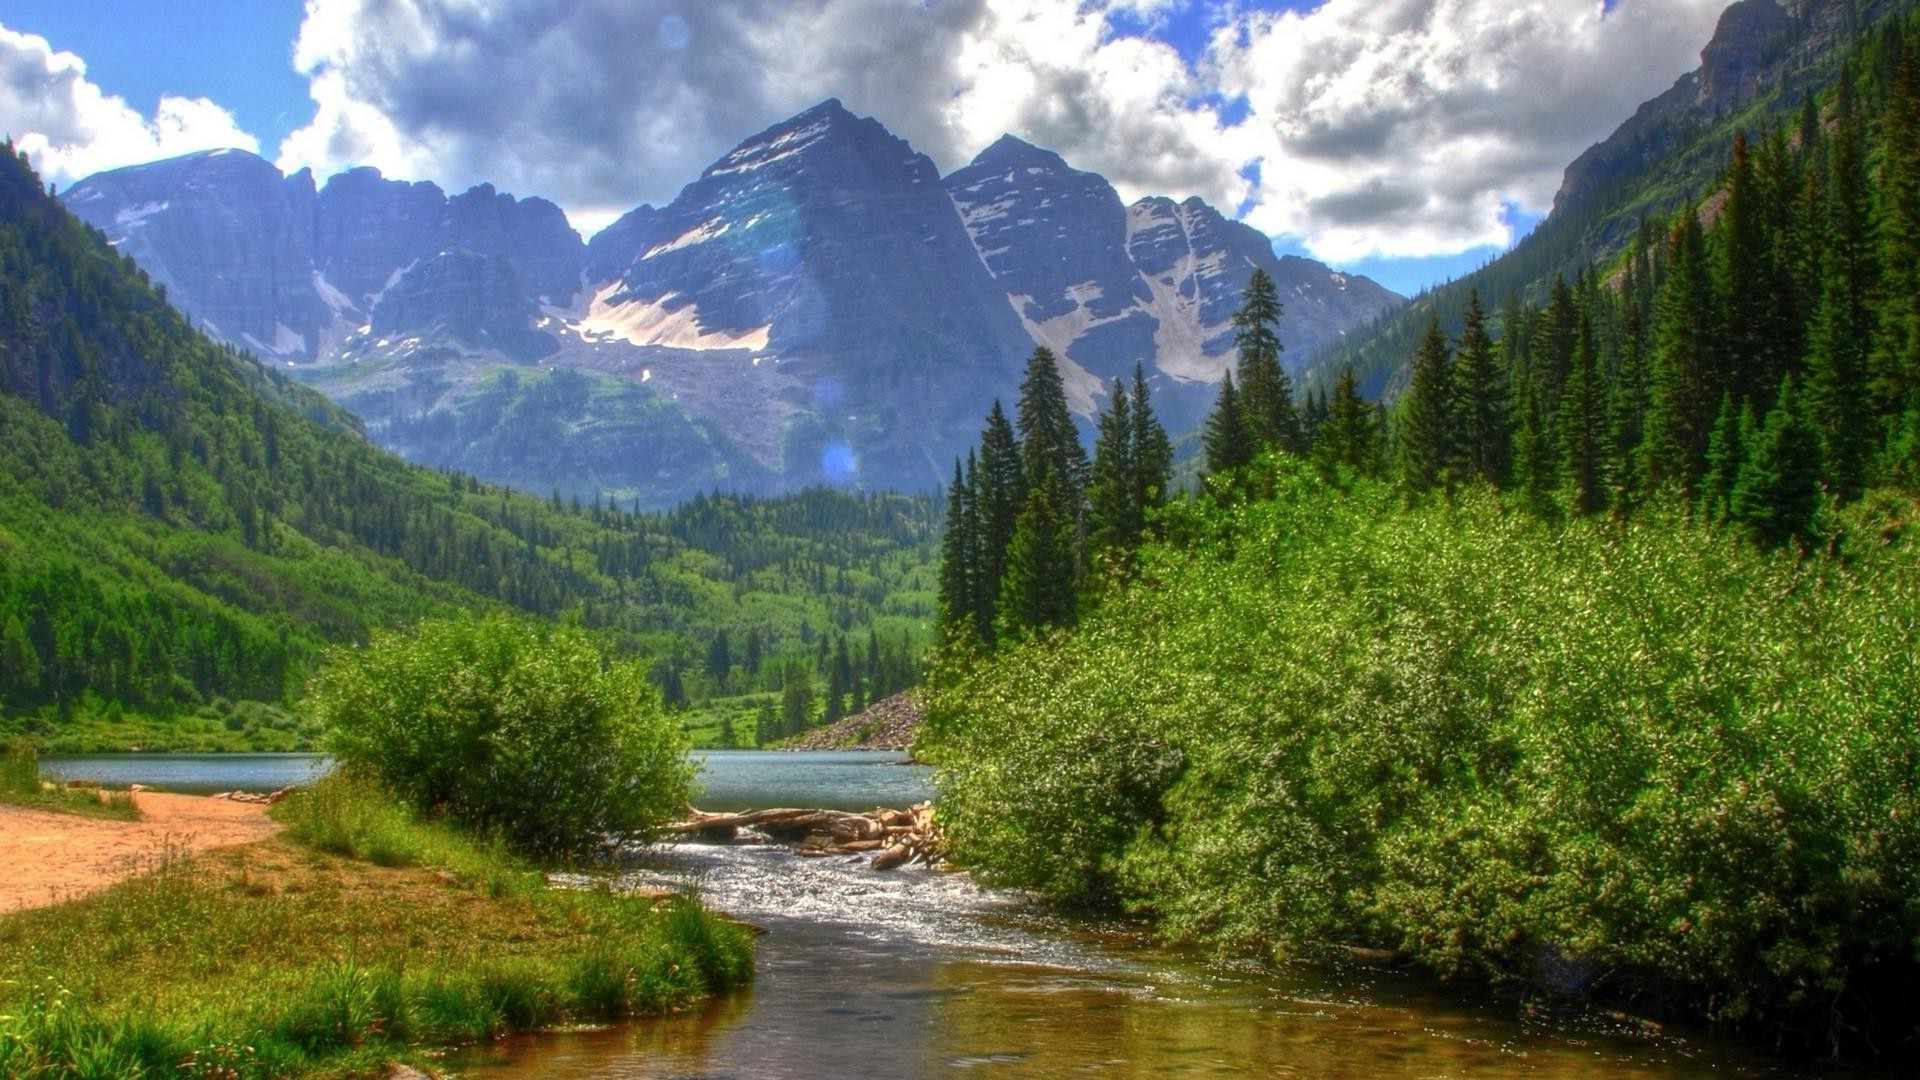 Greens, mountain, river, summer